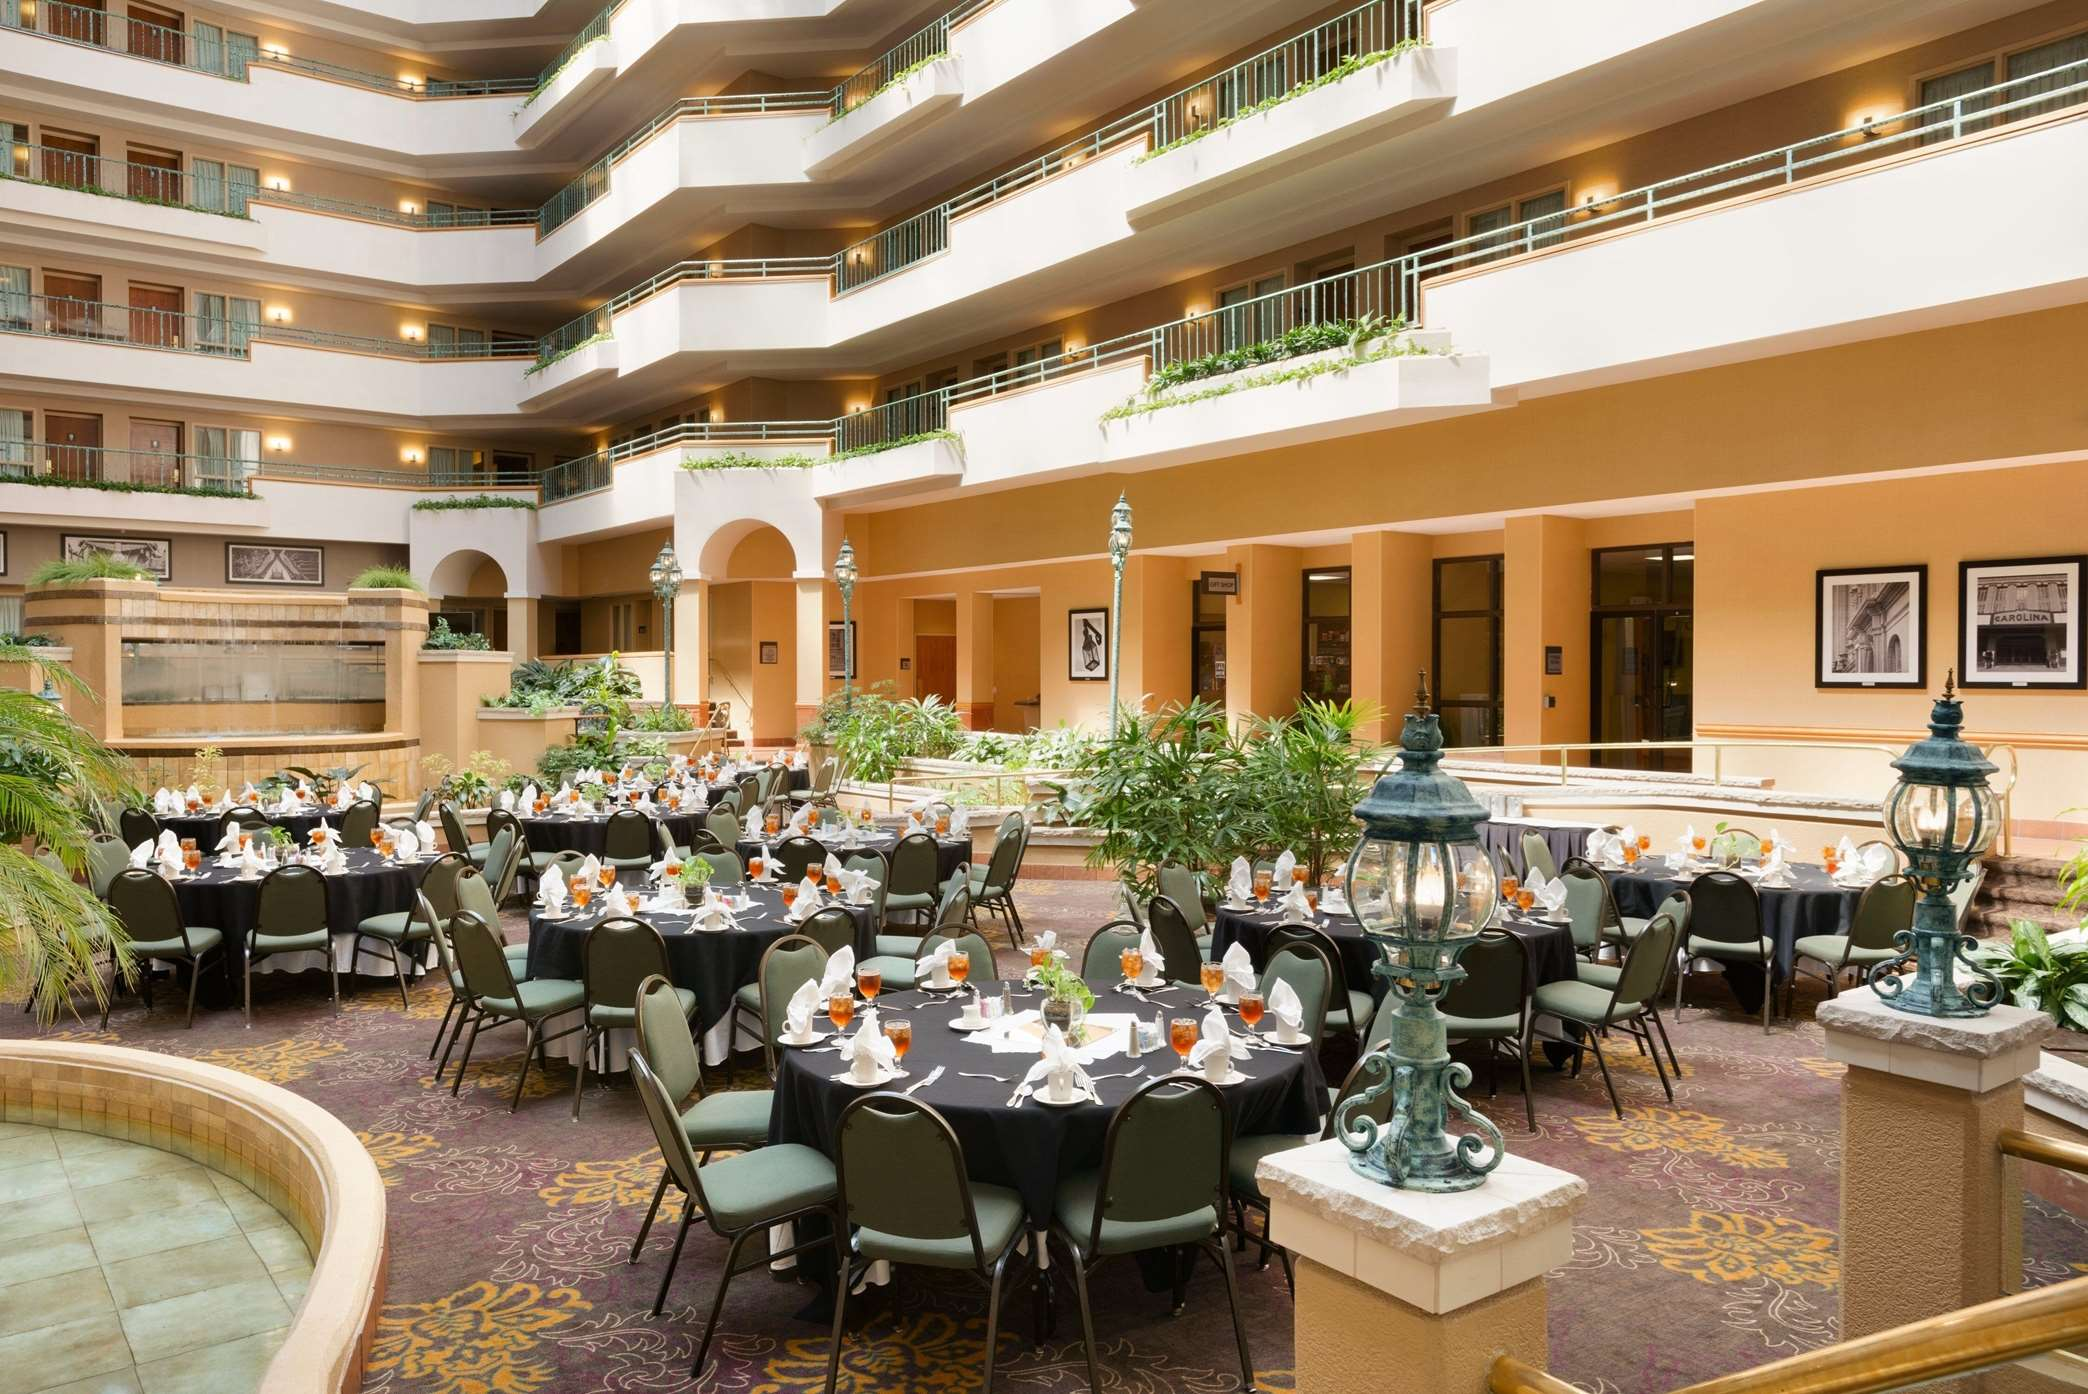 Embassy Suites by Hilton Greensboro Airport image 19